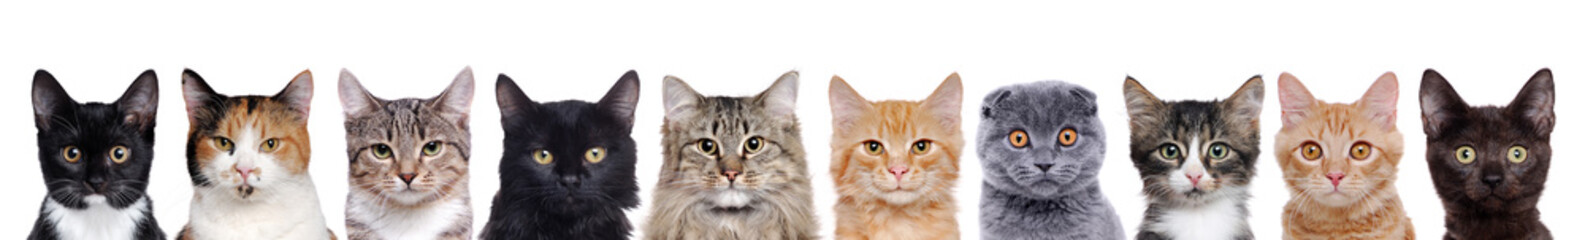 Fototapeta Kot closeup portrait of a group of cats of different breeds sitting in a line isolated over white background